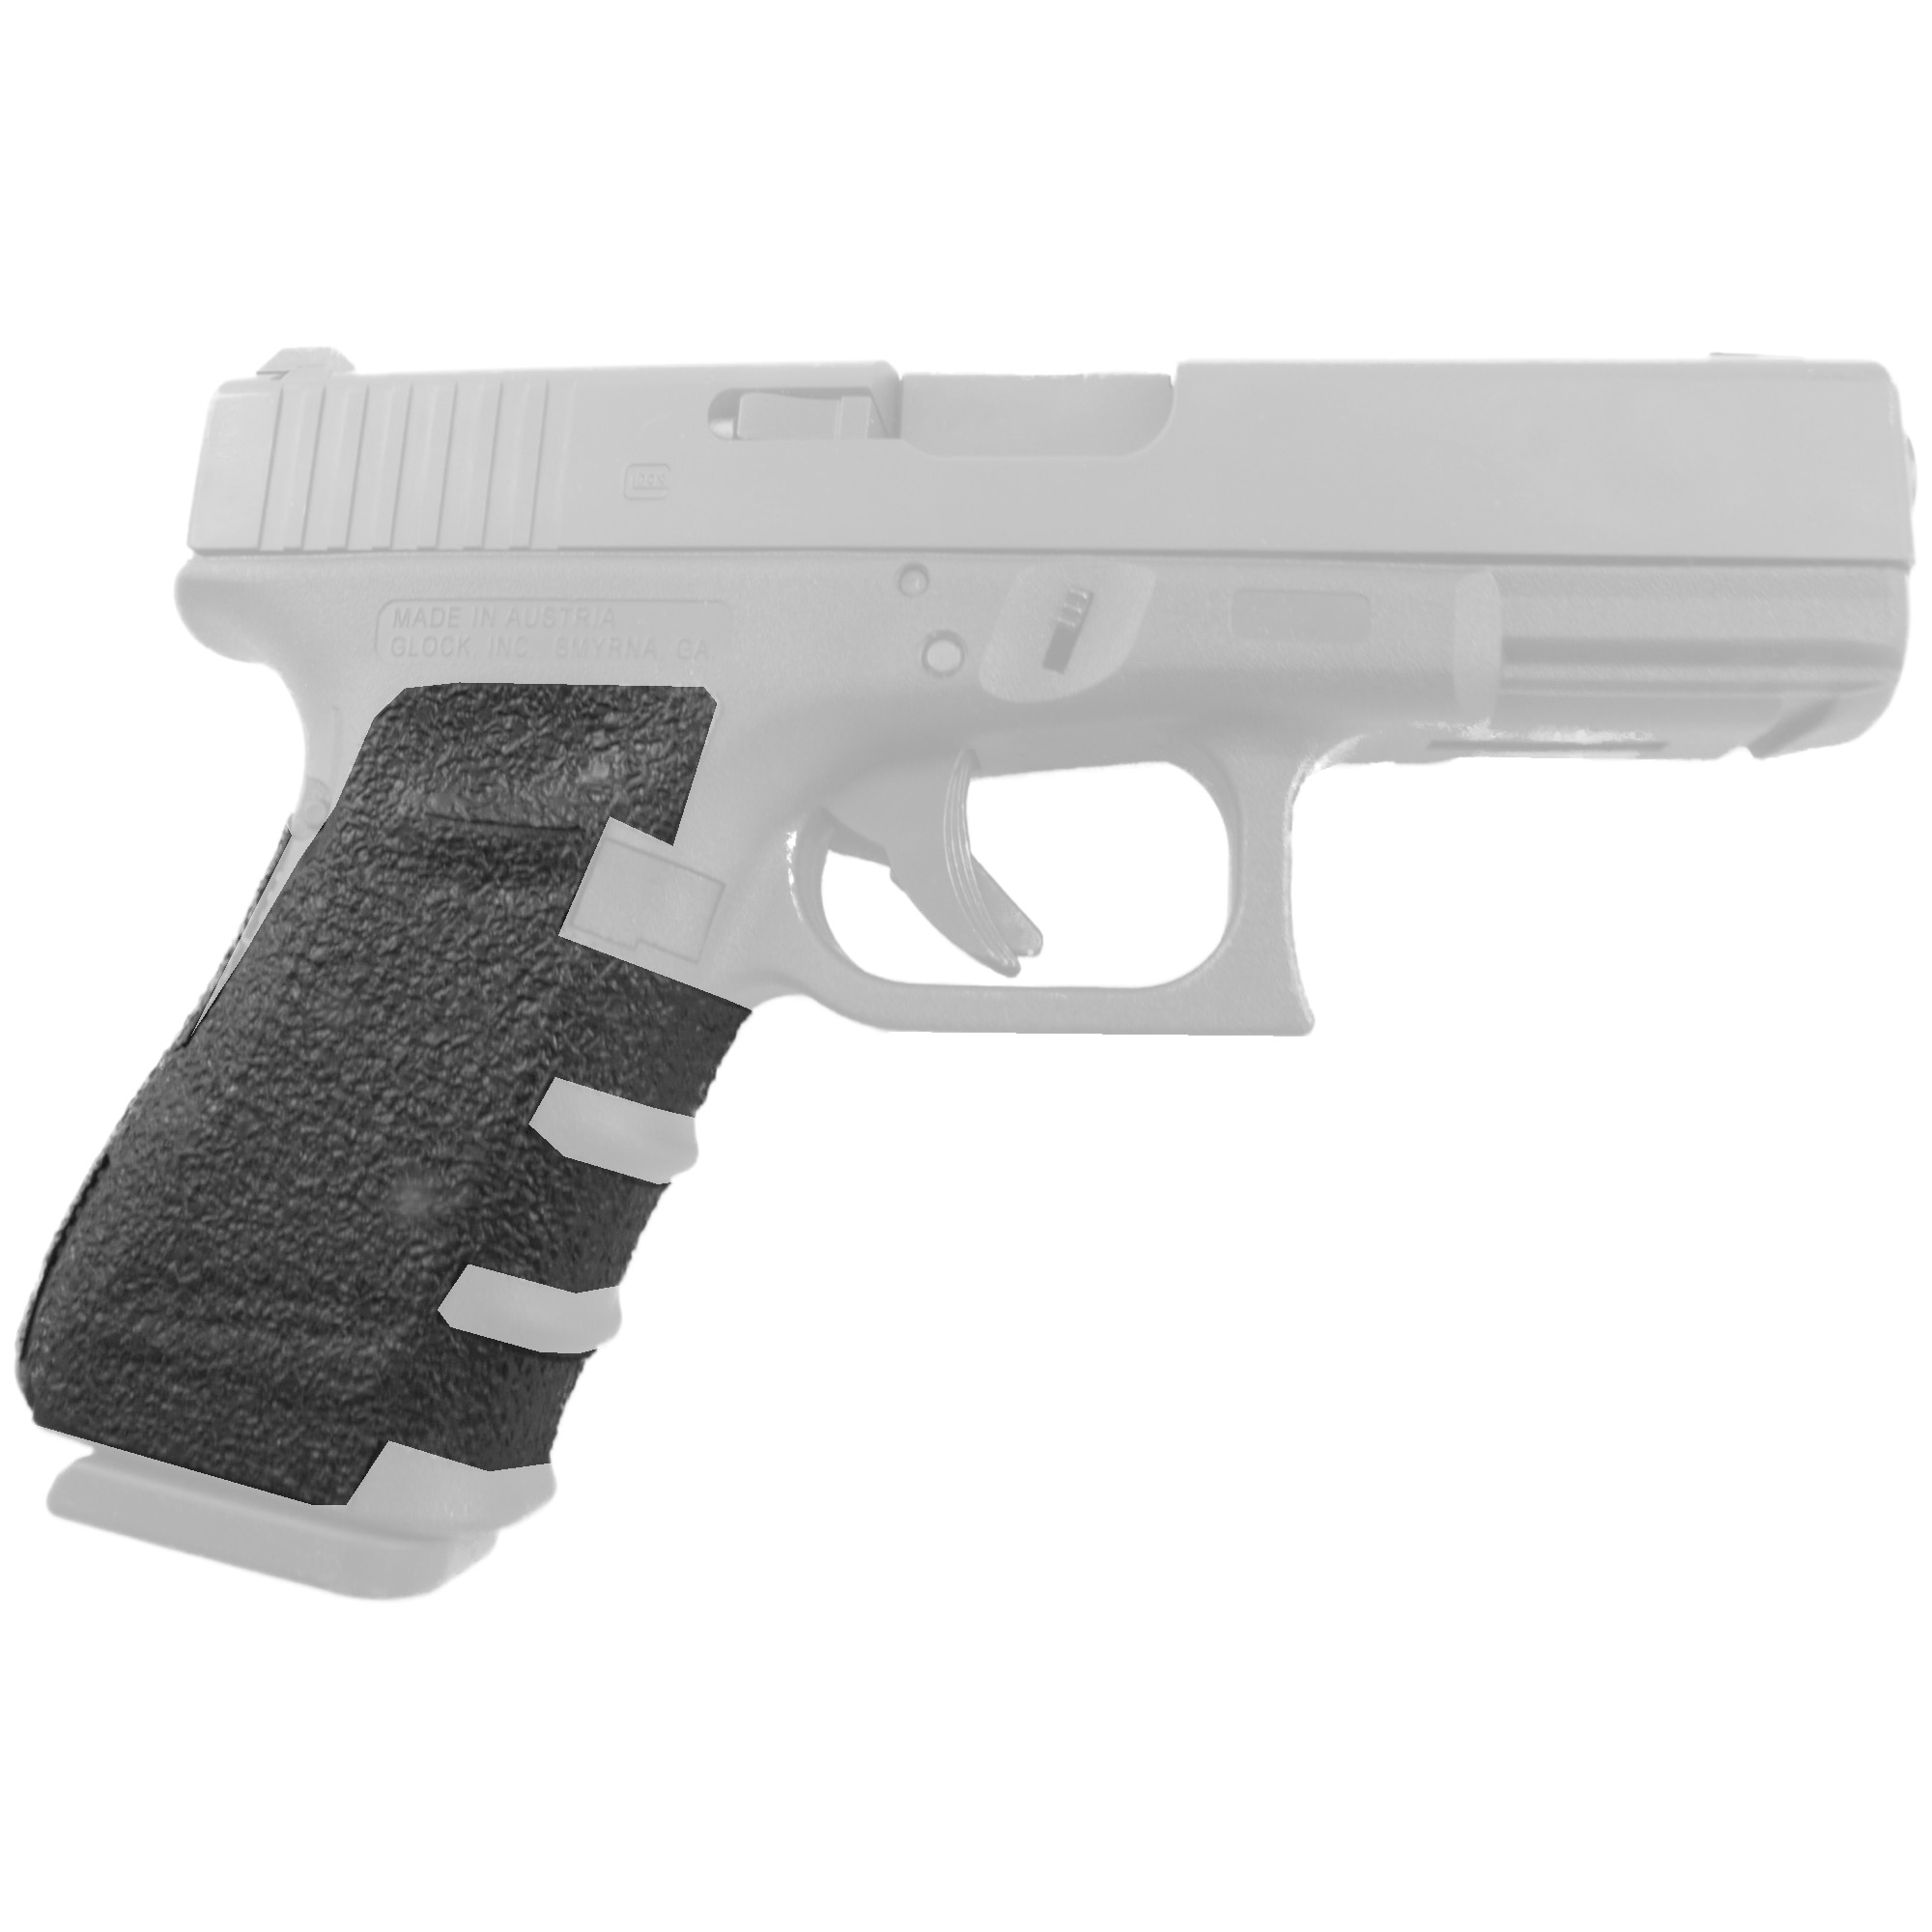 """TALON Grips for Glock 19"""" 23"""" 25"""" 32"""" and 38 models Gen 4 with a Medium Backstrap. This rear wrap grip is in the rubber texture. This grip provides full coverage on the side panels including above the thumb rest"""" ample coverage on the backstrap"""" and three finger wraps for the finger groves under the trigger guard. This grip has a logo cutout for the Glock emblem on the left side of the handle. This grip sticks extremely well even with the Rough Textured Frame (RTF). The medium backstrap will fit both the medium and the medium beavertail backstrap."""